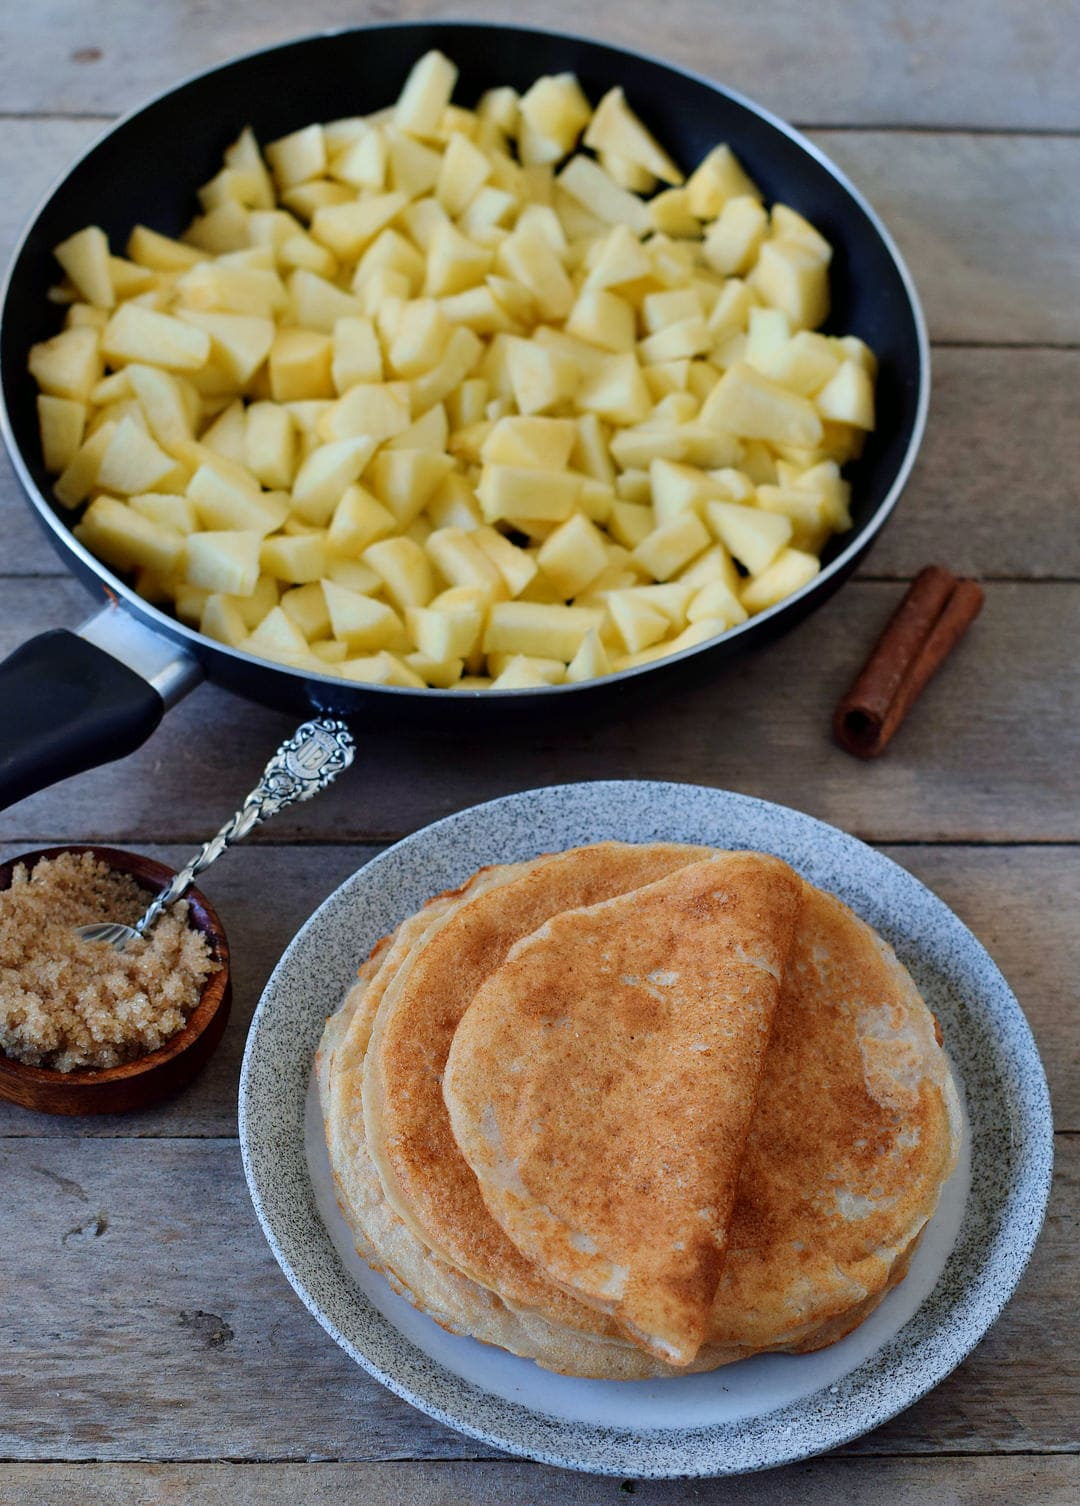 apples in a pan and crepes on a plate